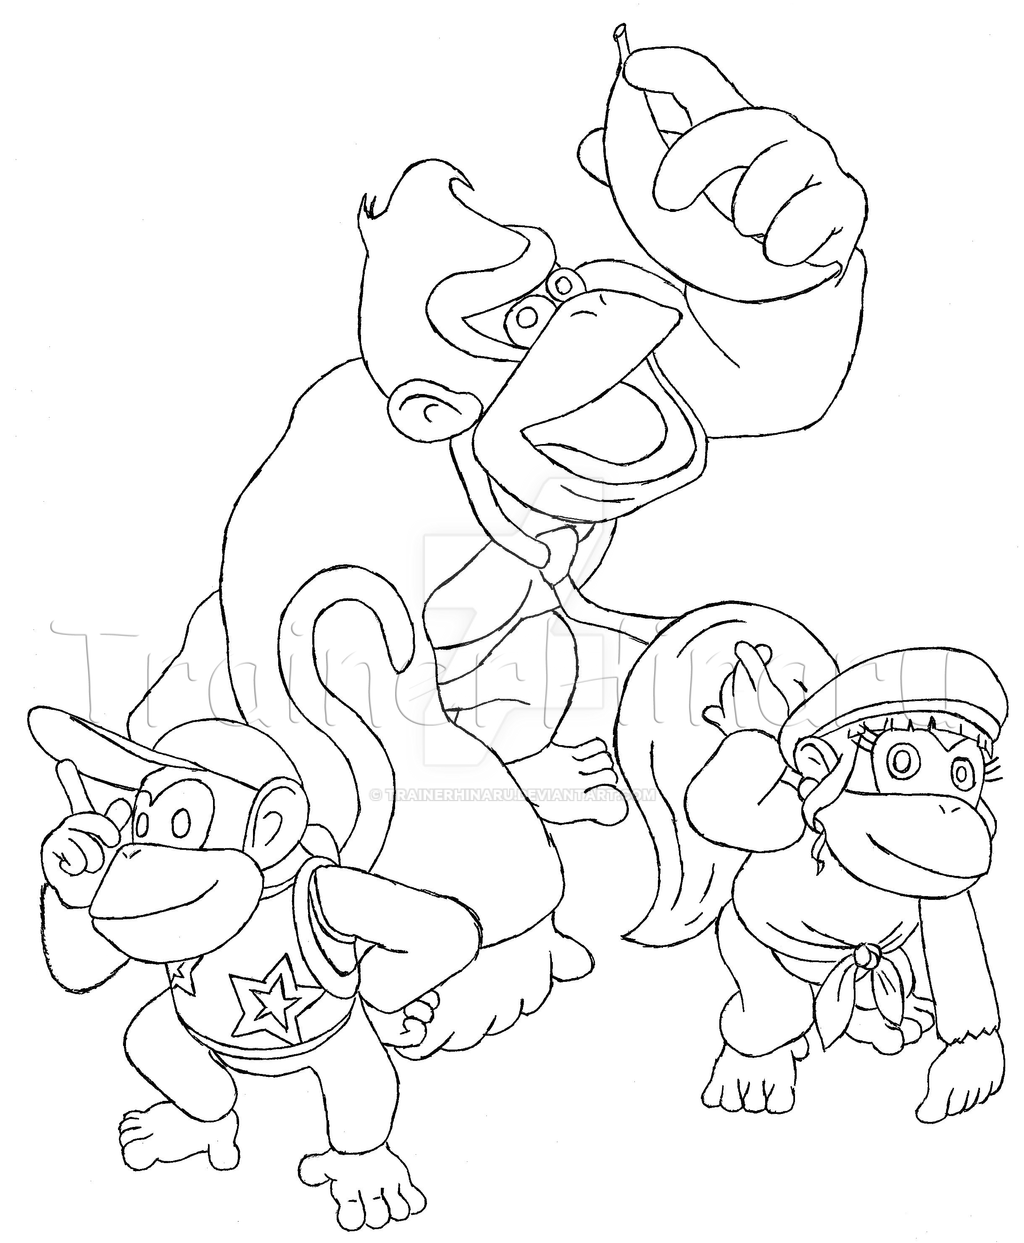 diddy dixie and donkey kong by trainerhinaru on deviantart